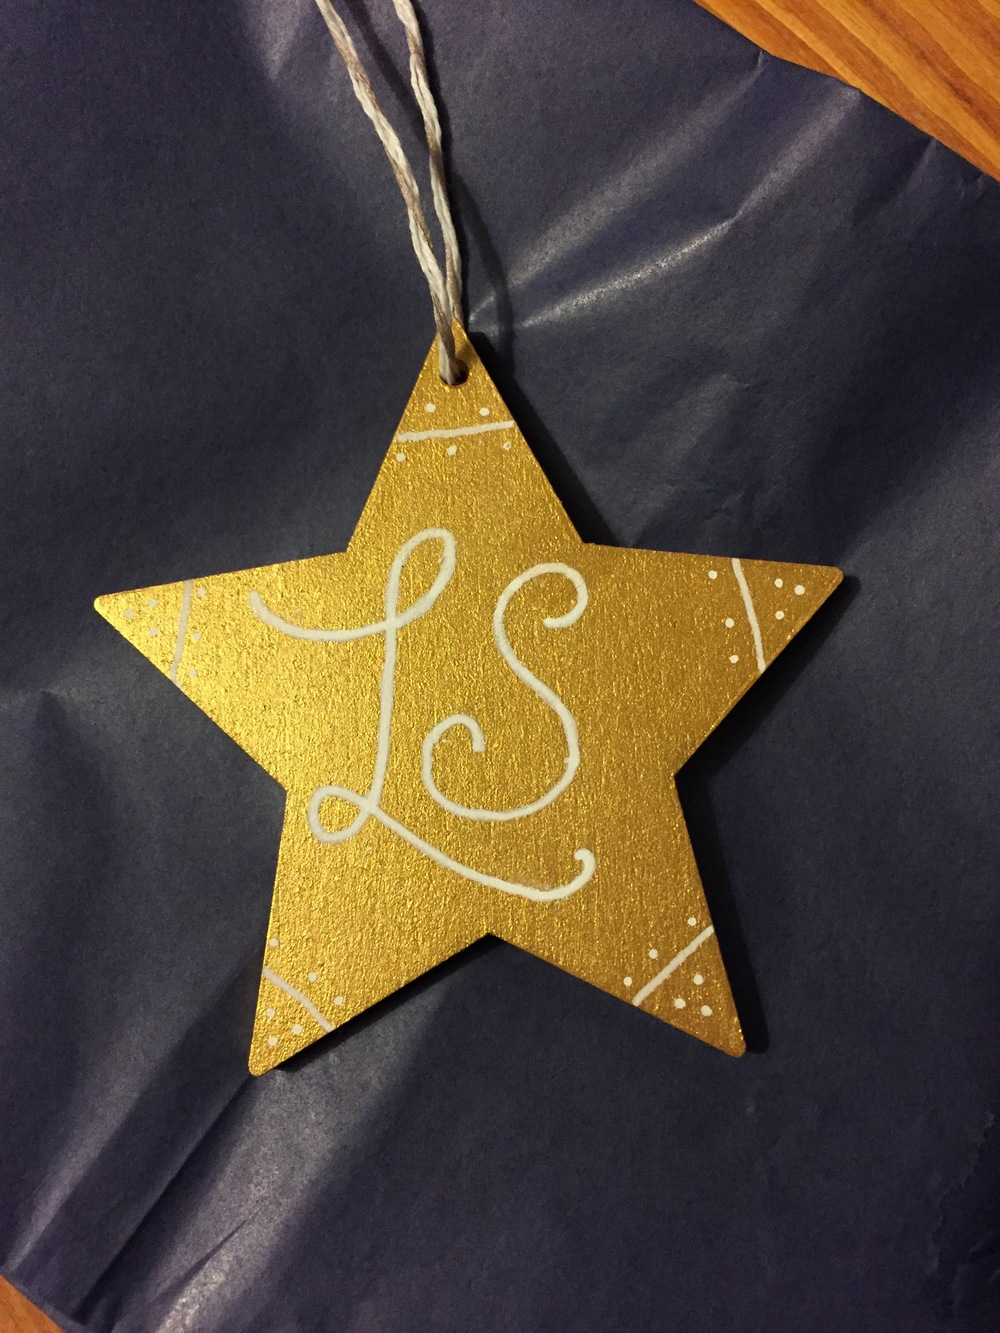 Personalised Christmas tree decoration.